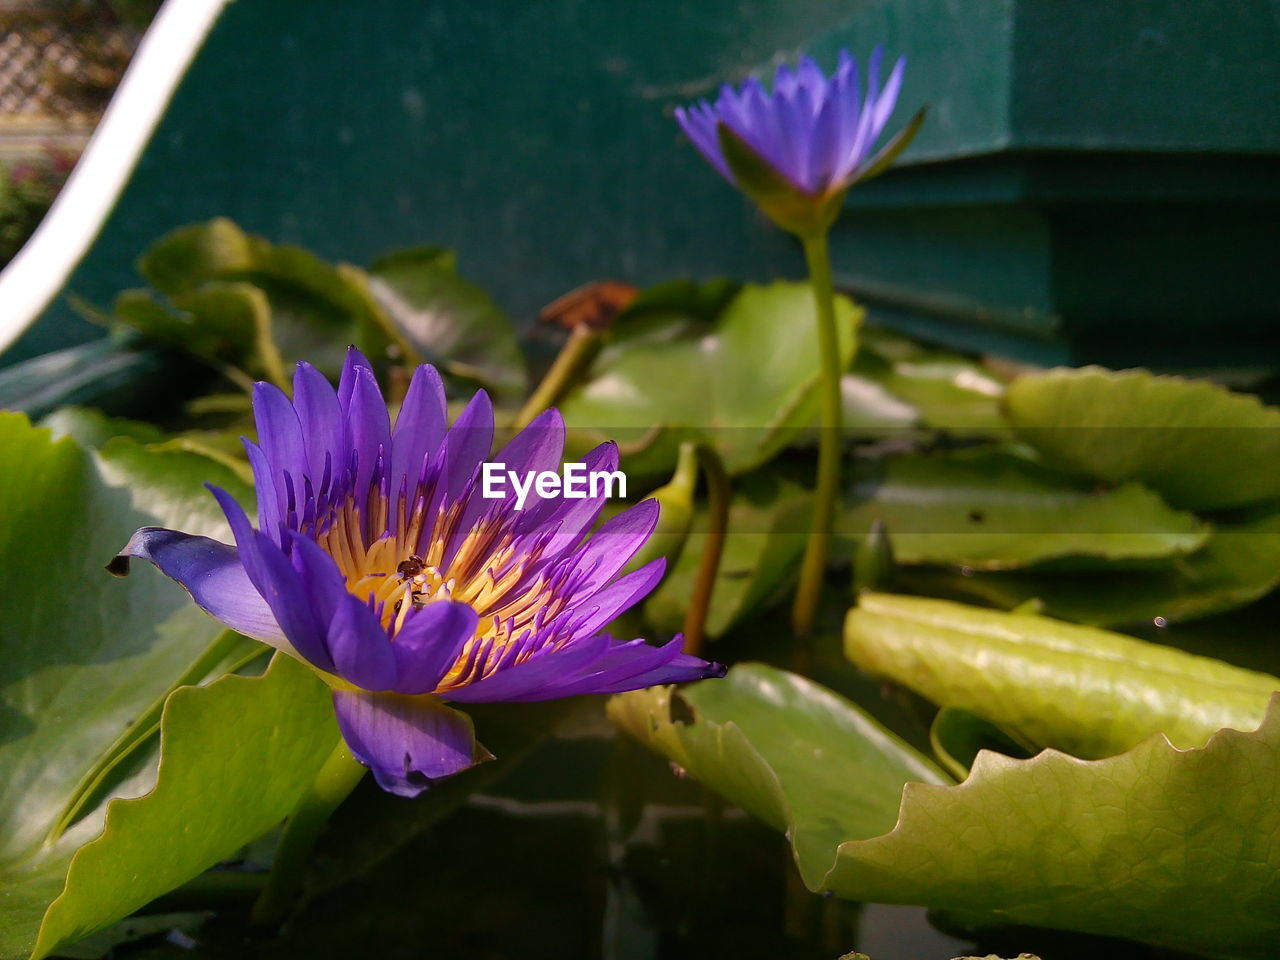 flower, flowering plant, plant, vulnerability, beauty in nature, fragility, growth, freshness, close-up, petal, flower head, inflorescence, water lily, purple, nature, leaf, plant part, pond, water, day, no people, pollen, lotus water lily, floating on water, outdoors